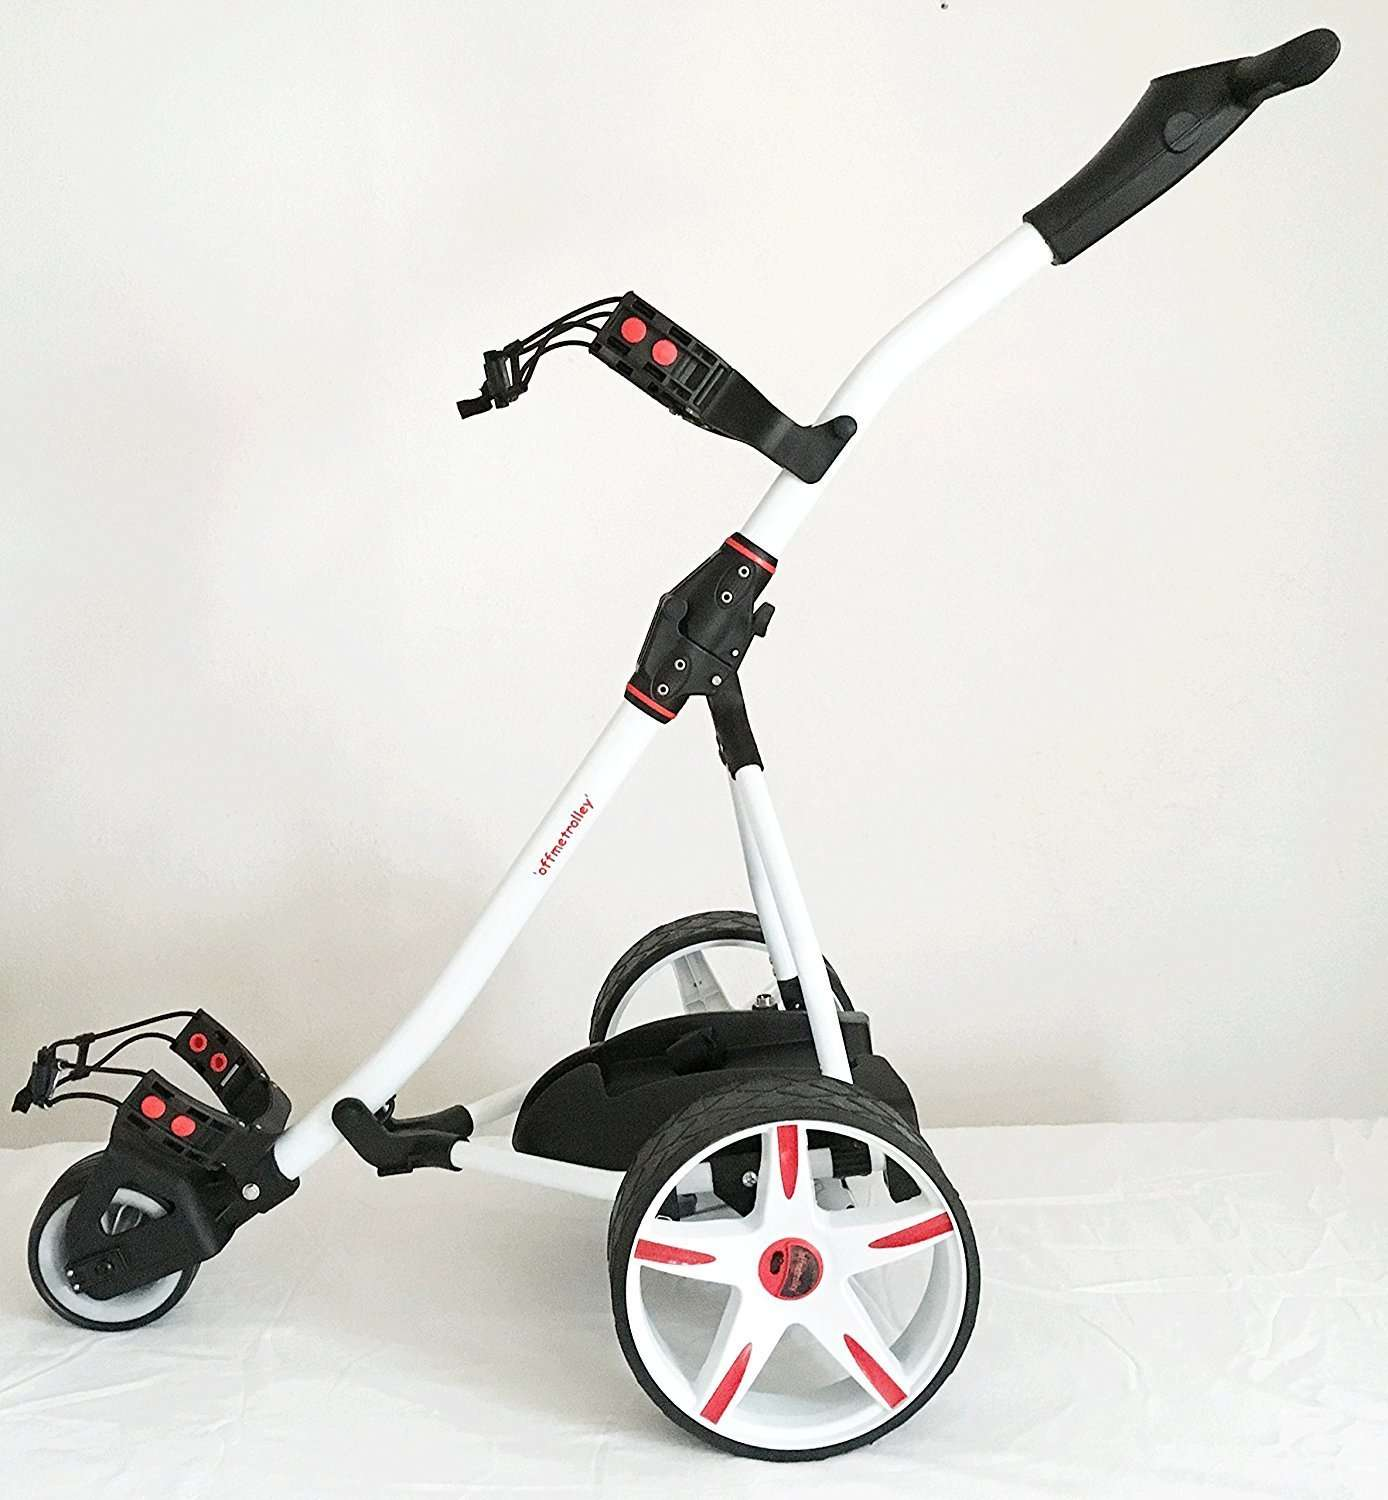 Are you after the best electric golf cart available for golfers? We have reviewed the top 10 that are available today and talk about the pro's and con's.